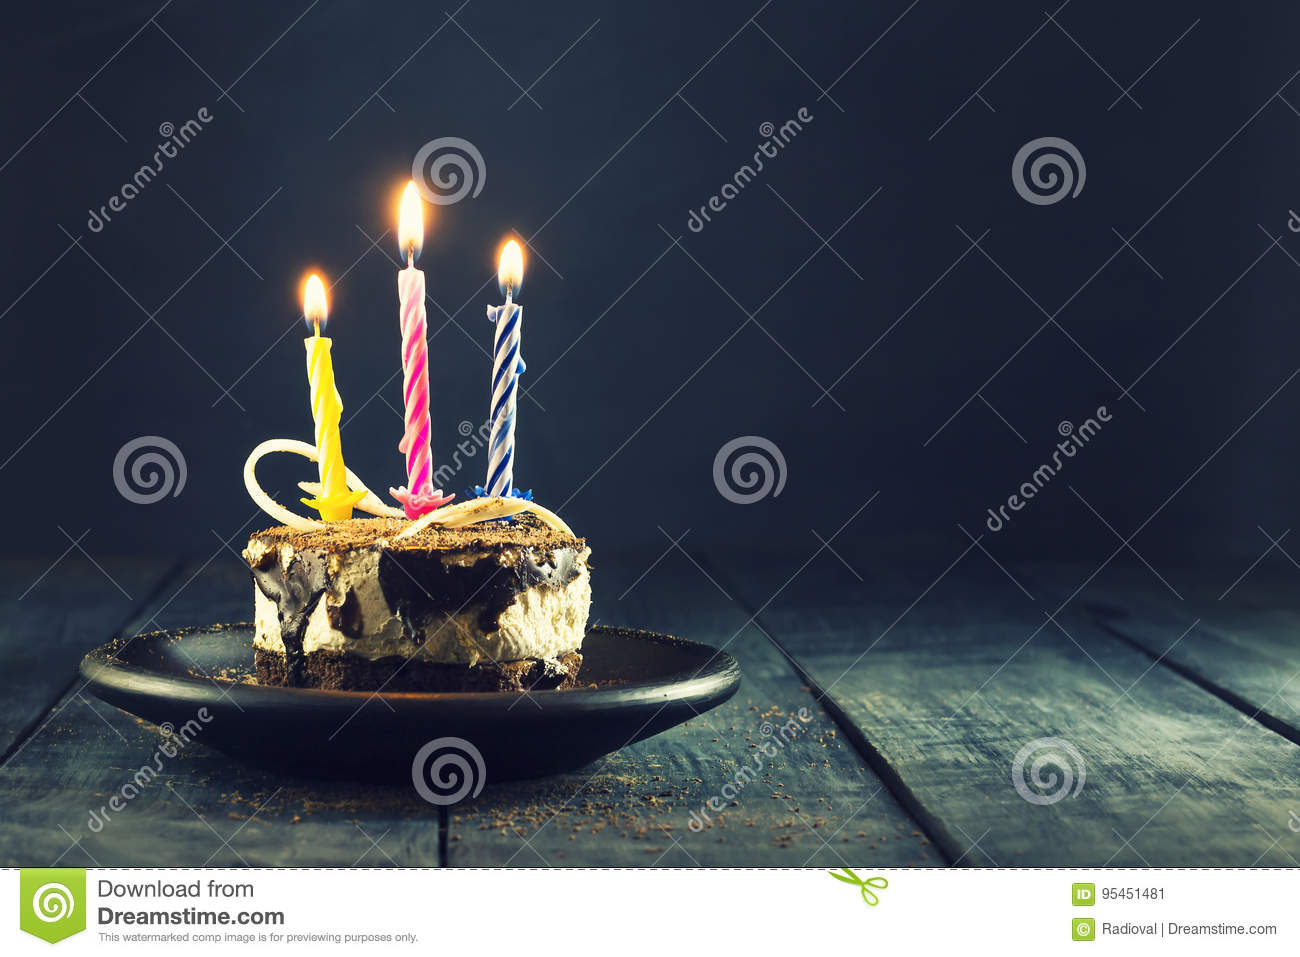 Chocolate cake with a candle and gifts.Happy Birthday, card. Holidays greeting card.